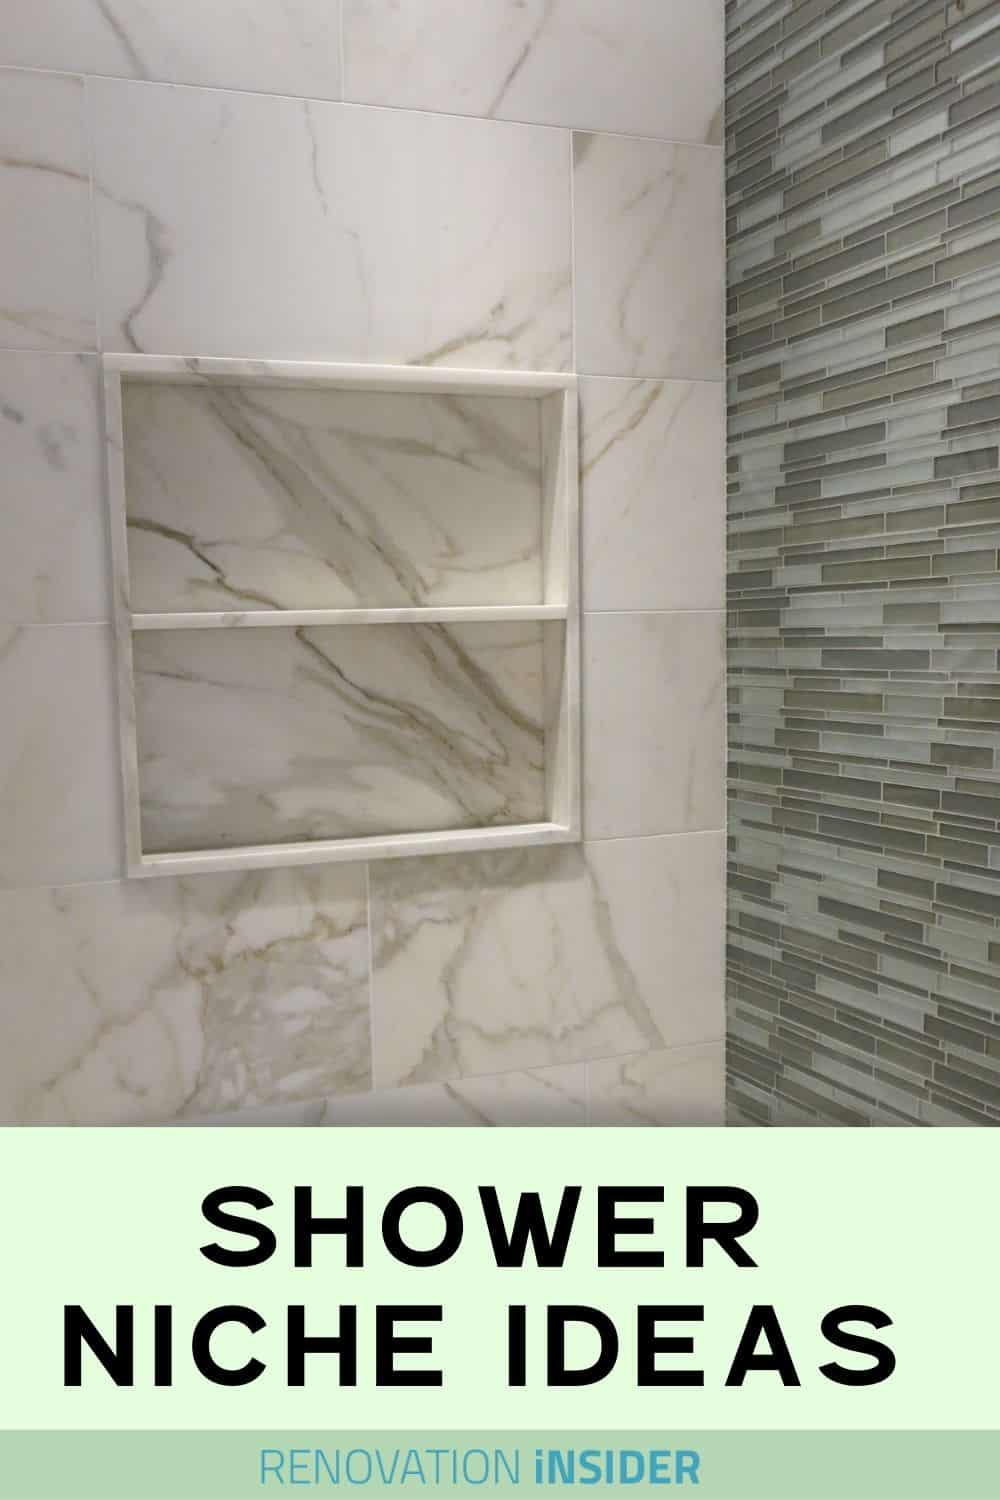 Shower niche in marble with one shelf